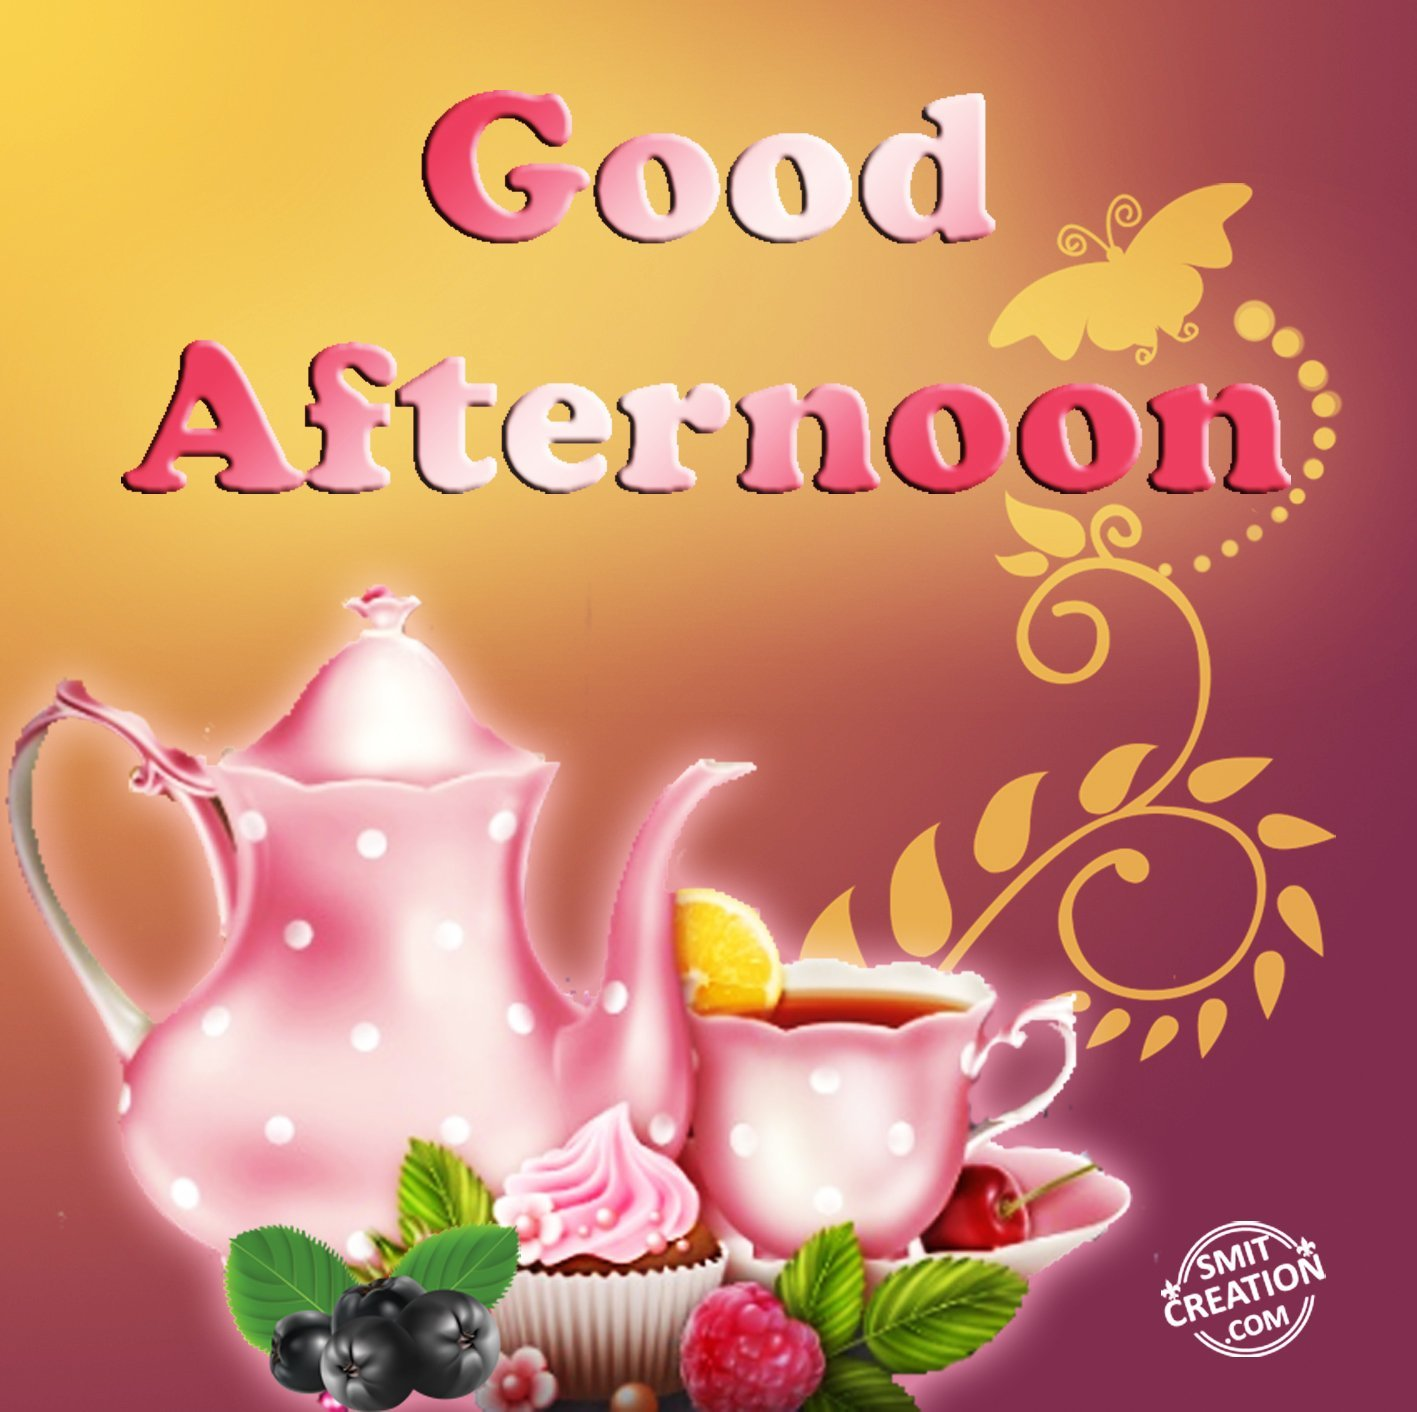 Good Afternoon Tea Pictures And Graphics Smitcreation